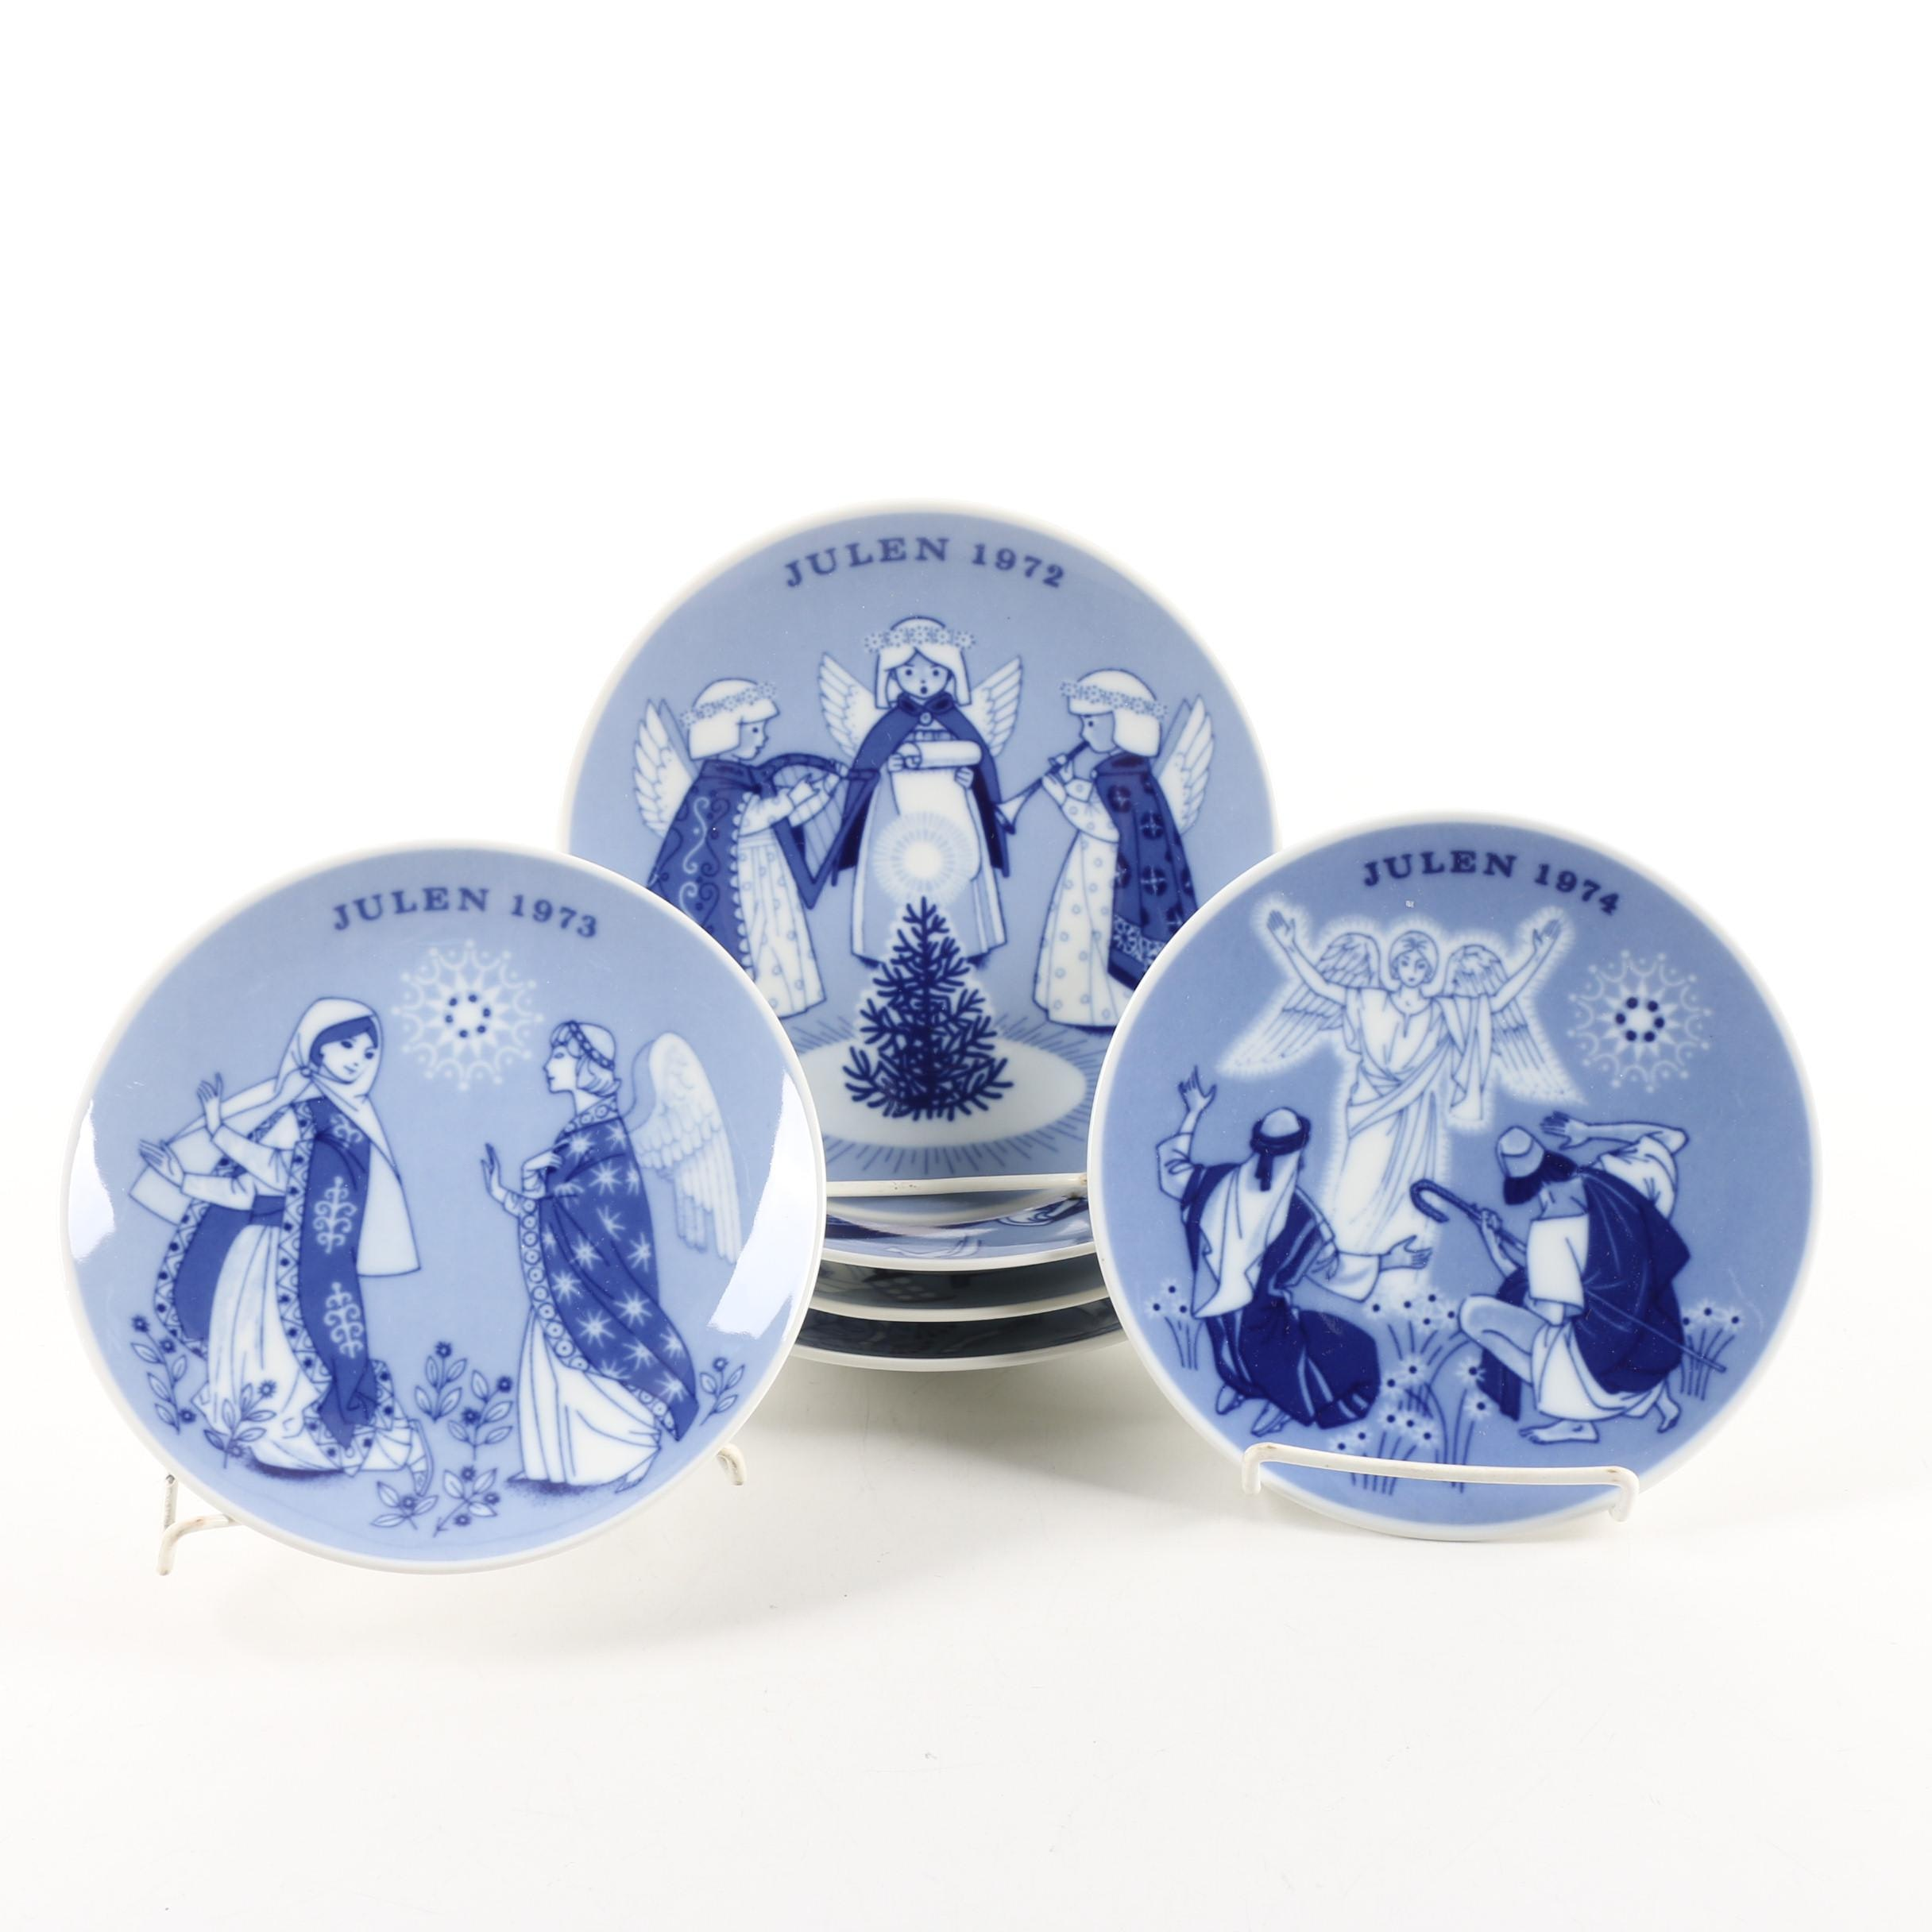 1970s Norwegian Porsgrund Porcelain Christmas Collector Plates